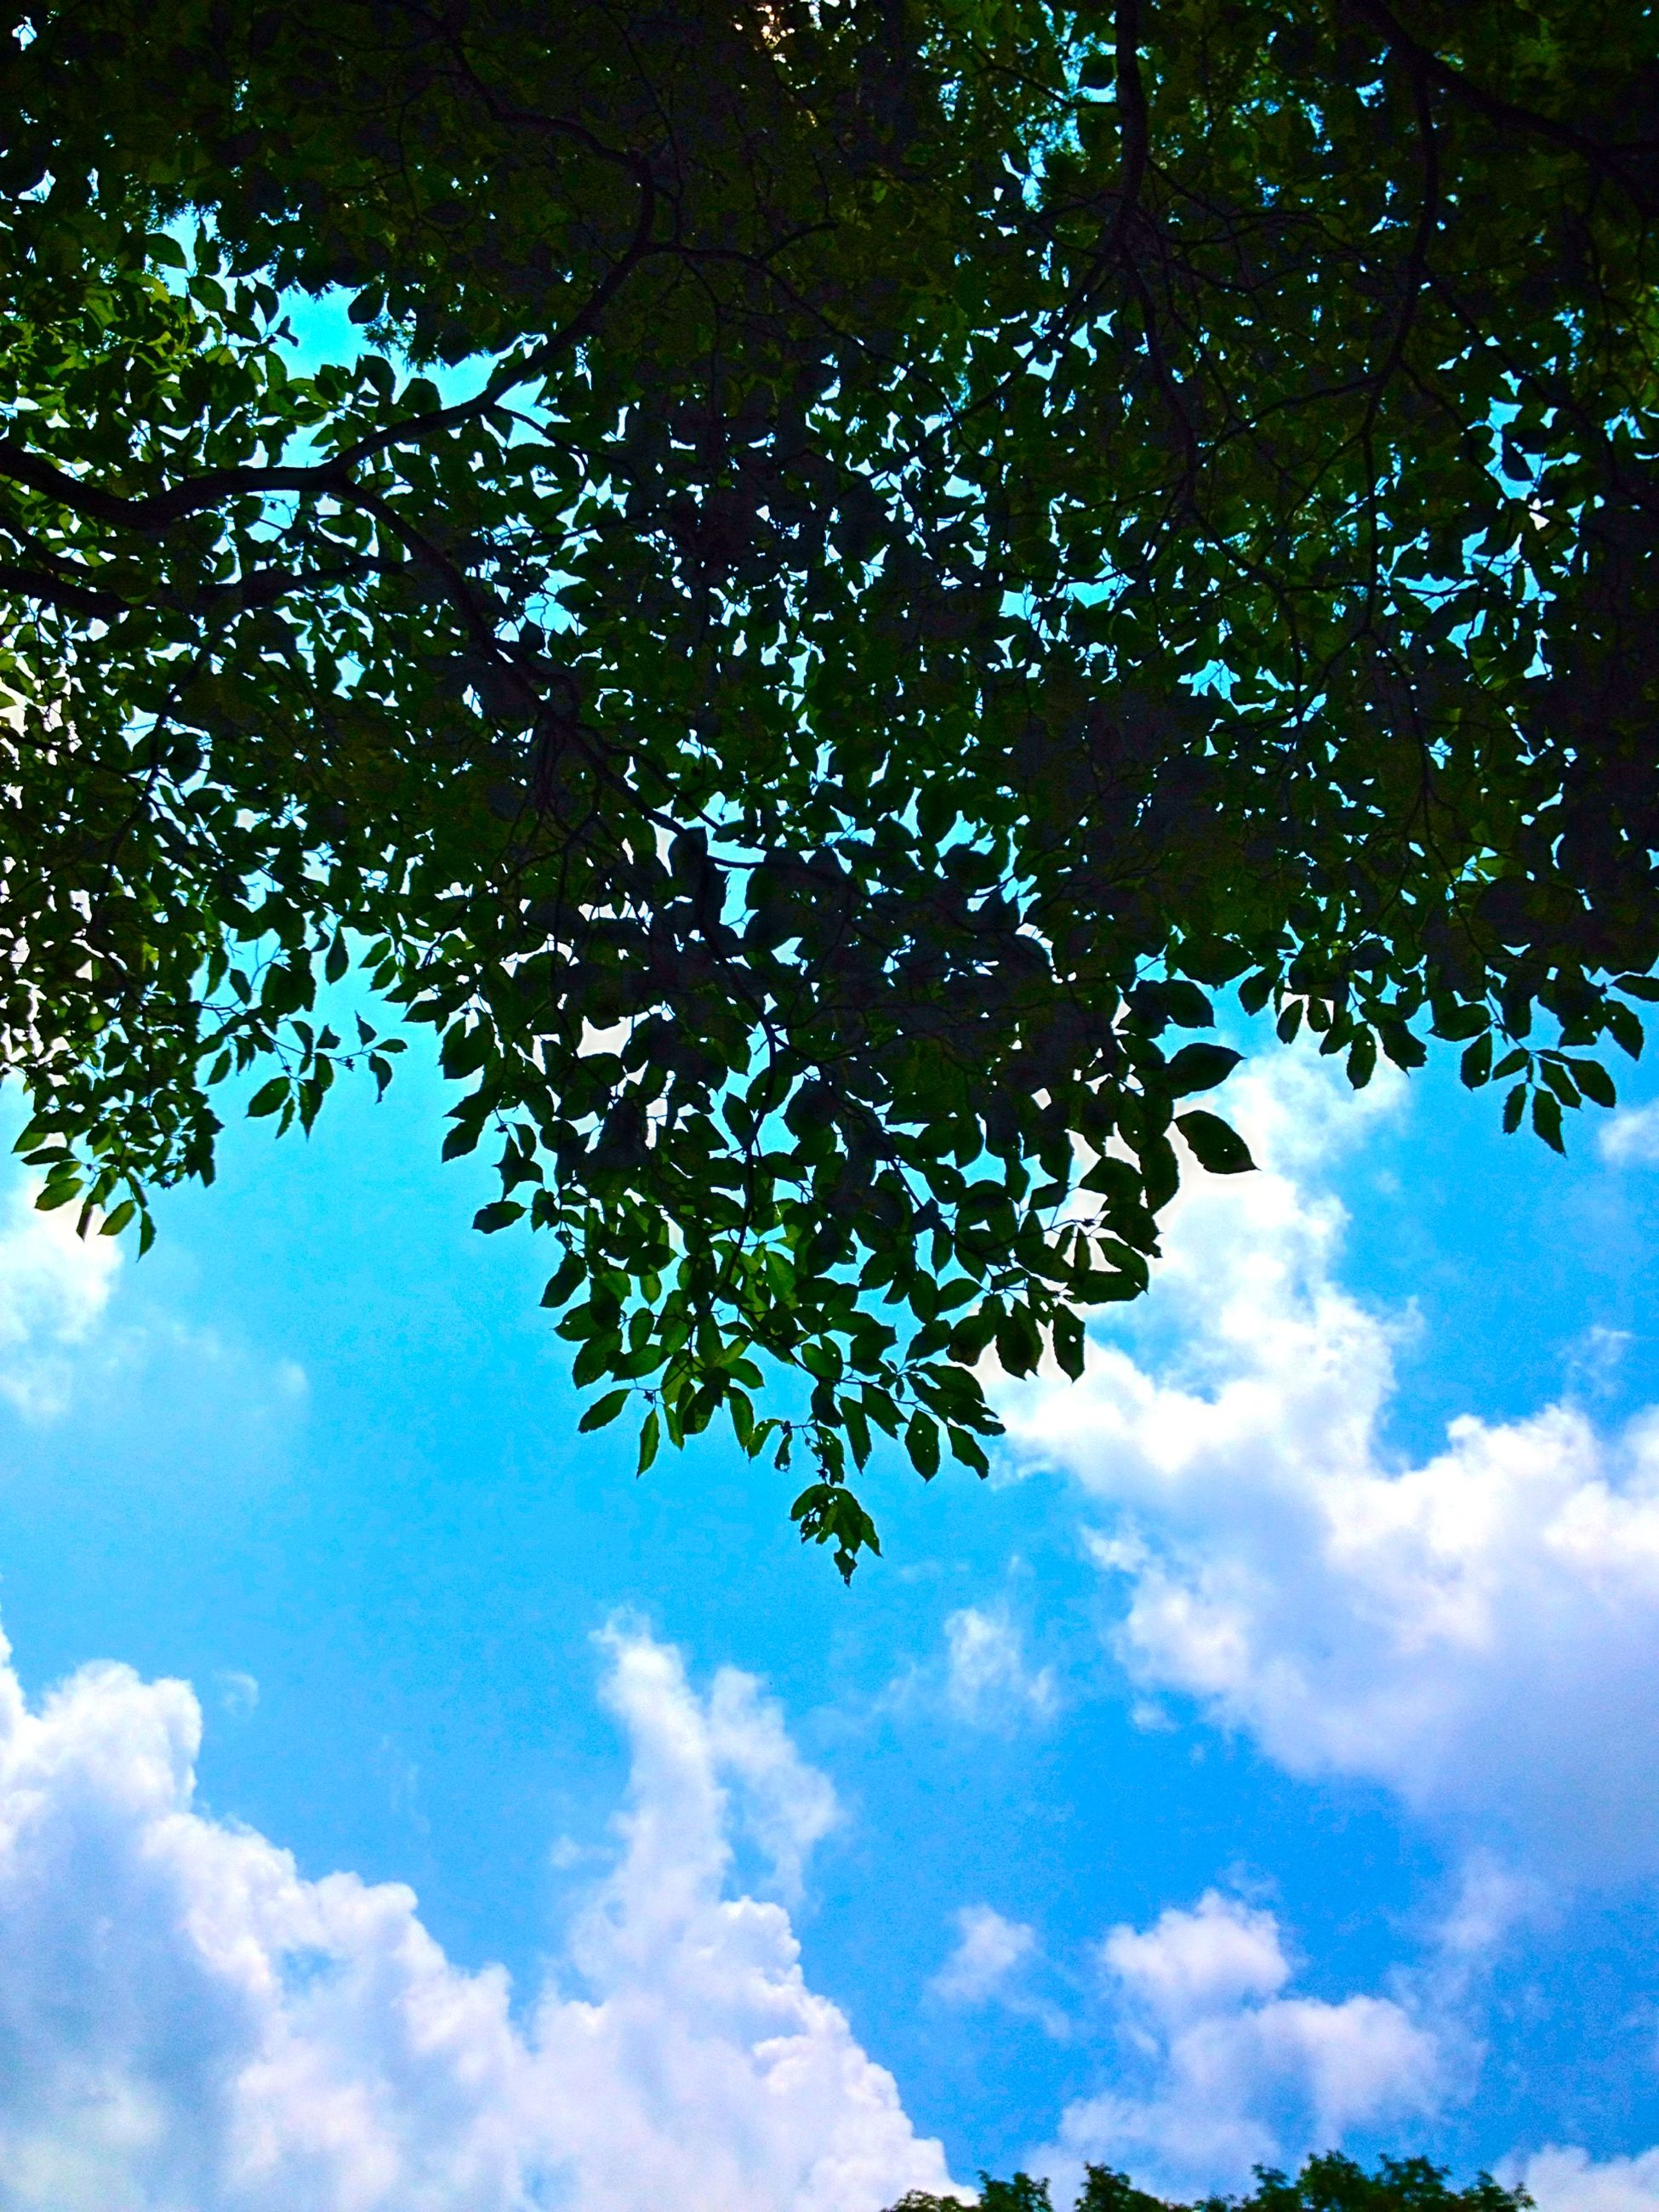 low angle view, tree, sky, cloud - sky, branch, tranquility, nature, beauty in nature, blue, cloud, growth, scenics, cloudy, tranquil scene, day, sunlight, outdoors, no people, leaf, idyllic